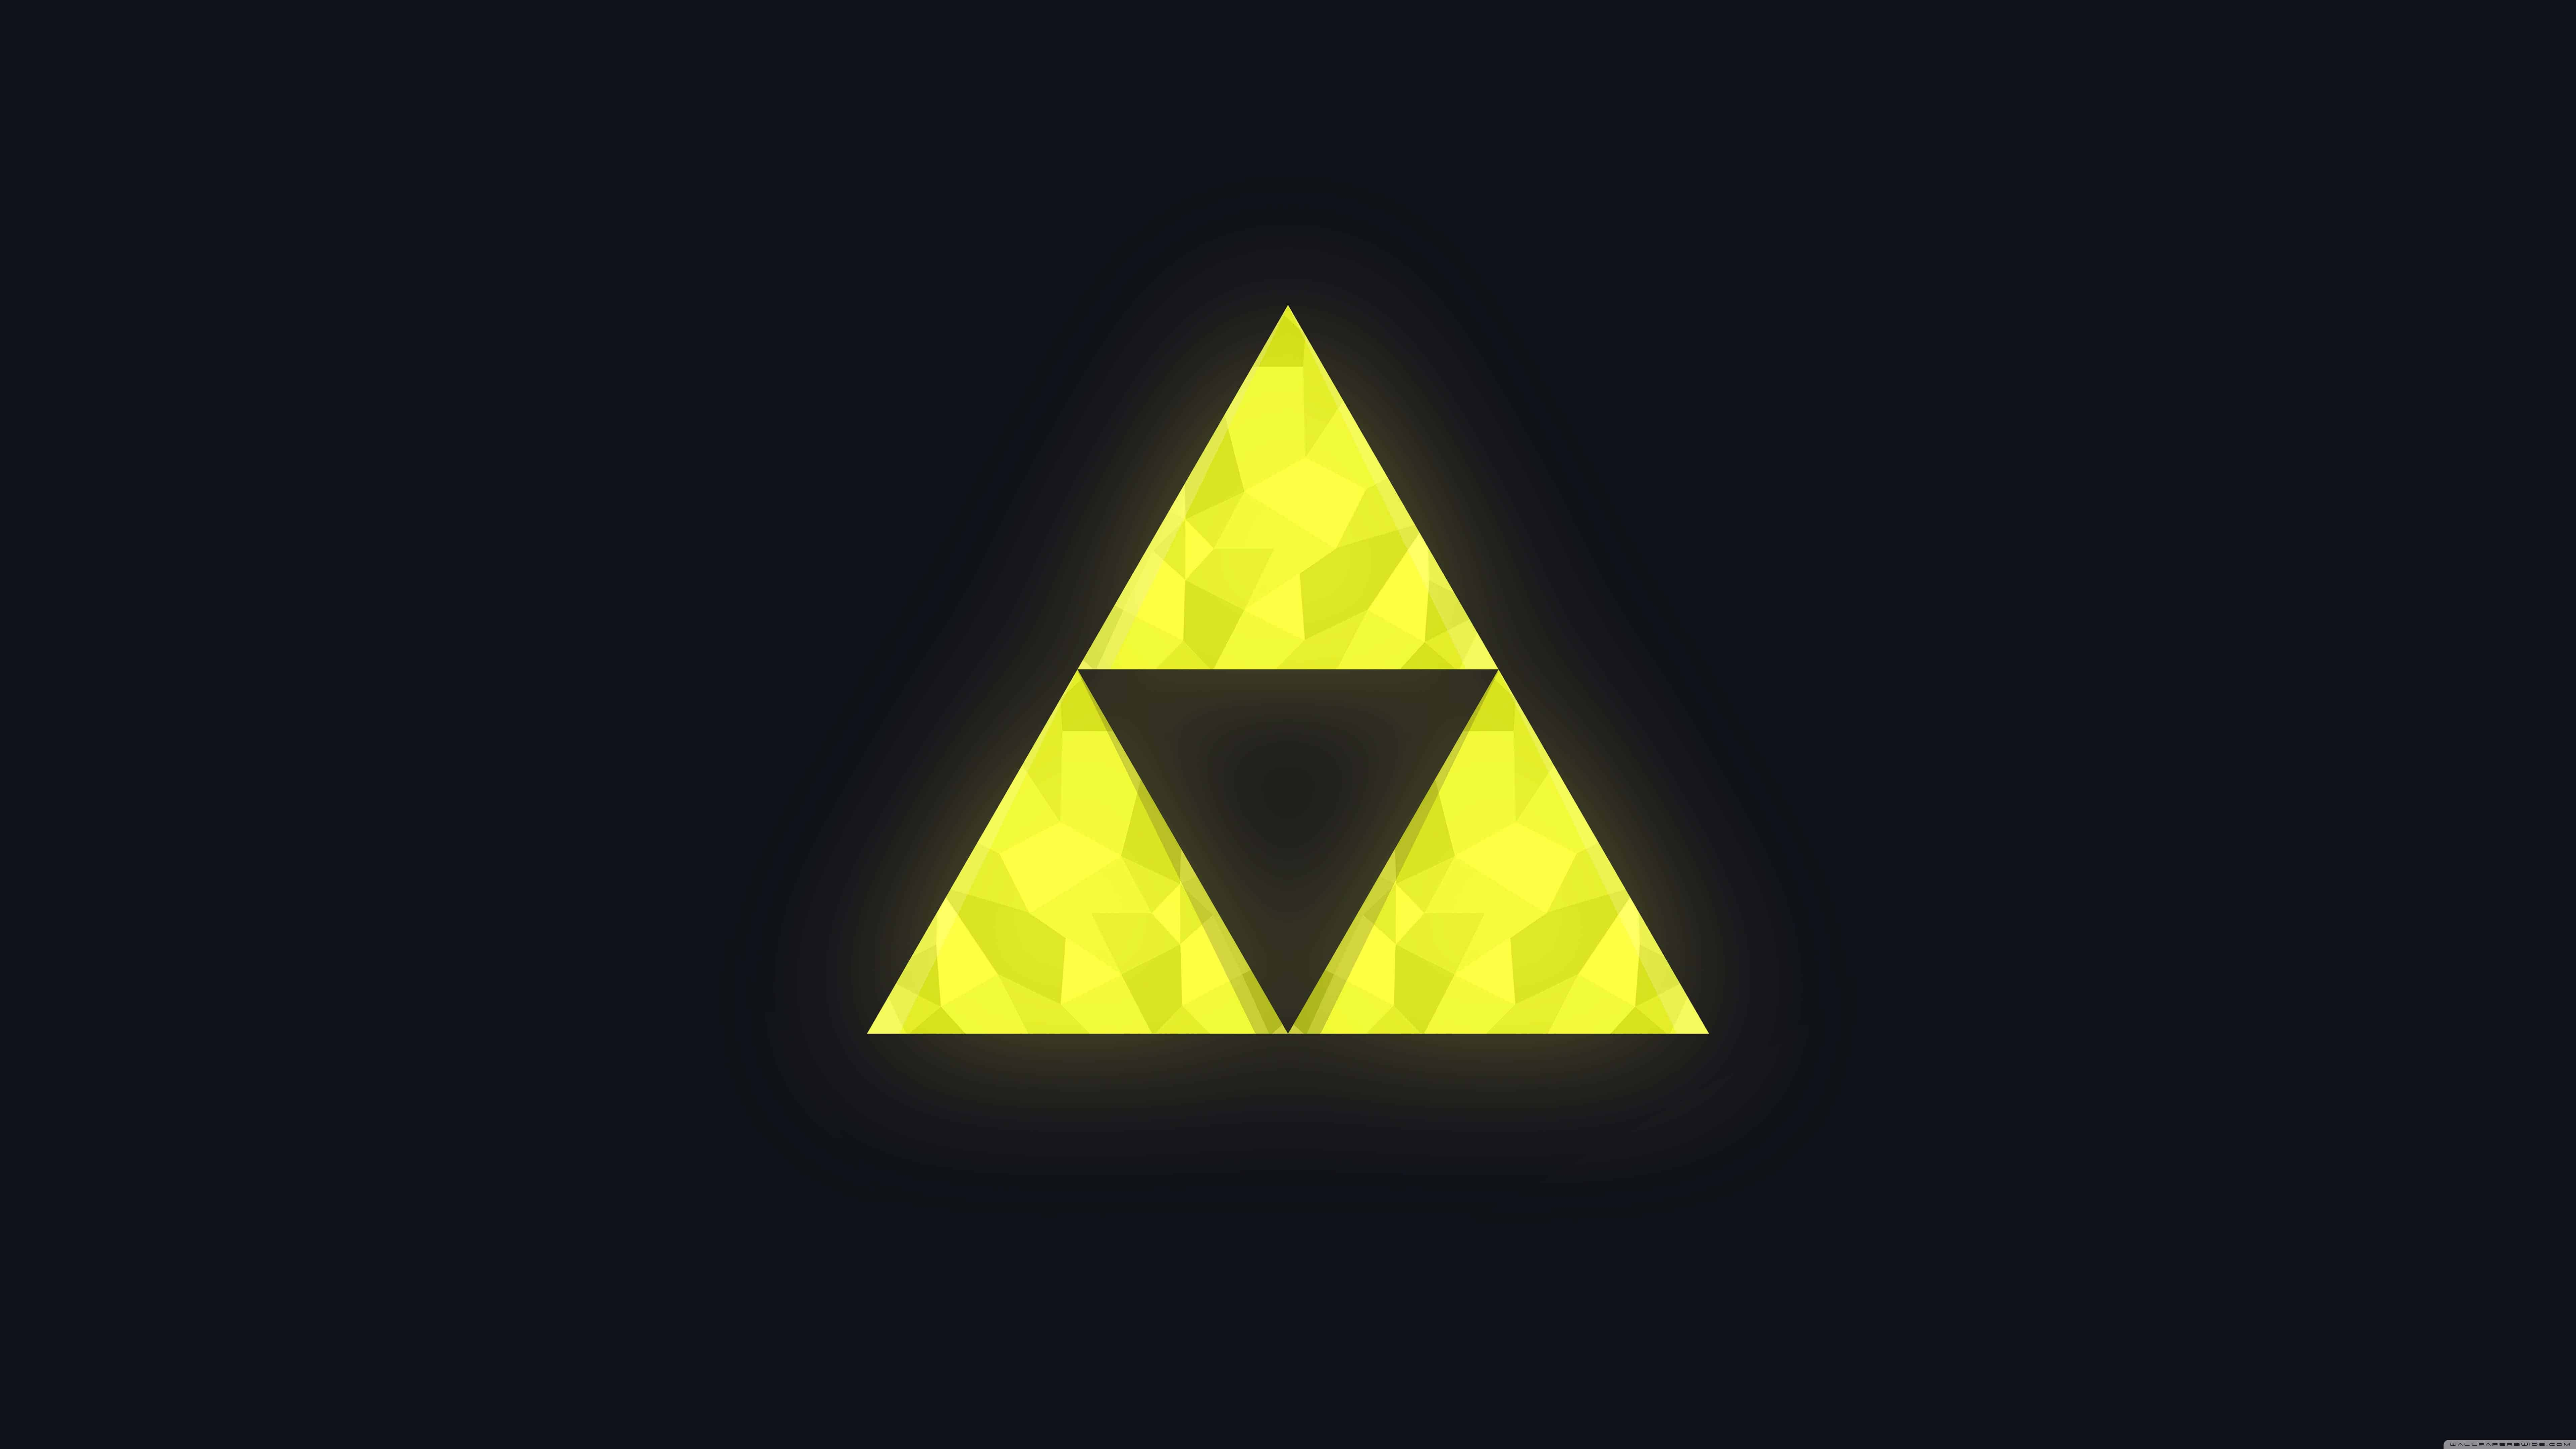 Legend Of Zelda Triforce Uhd 8k Wallpaper Pixelz